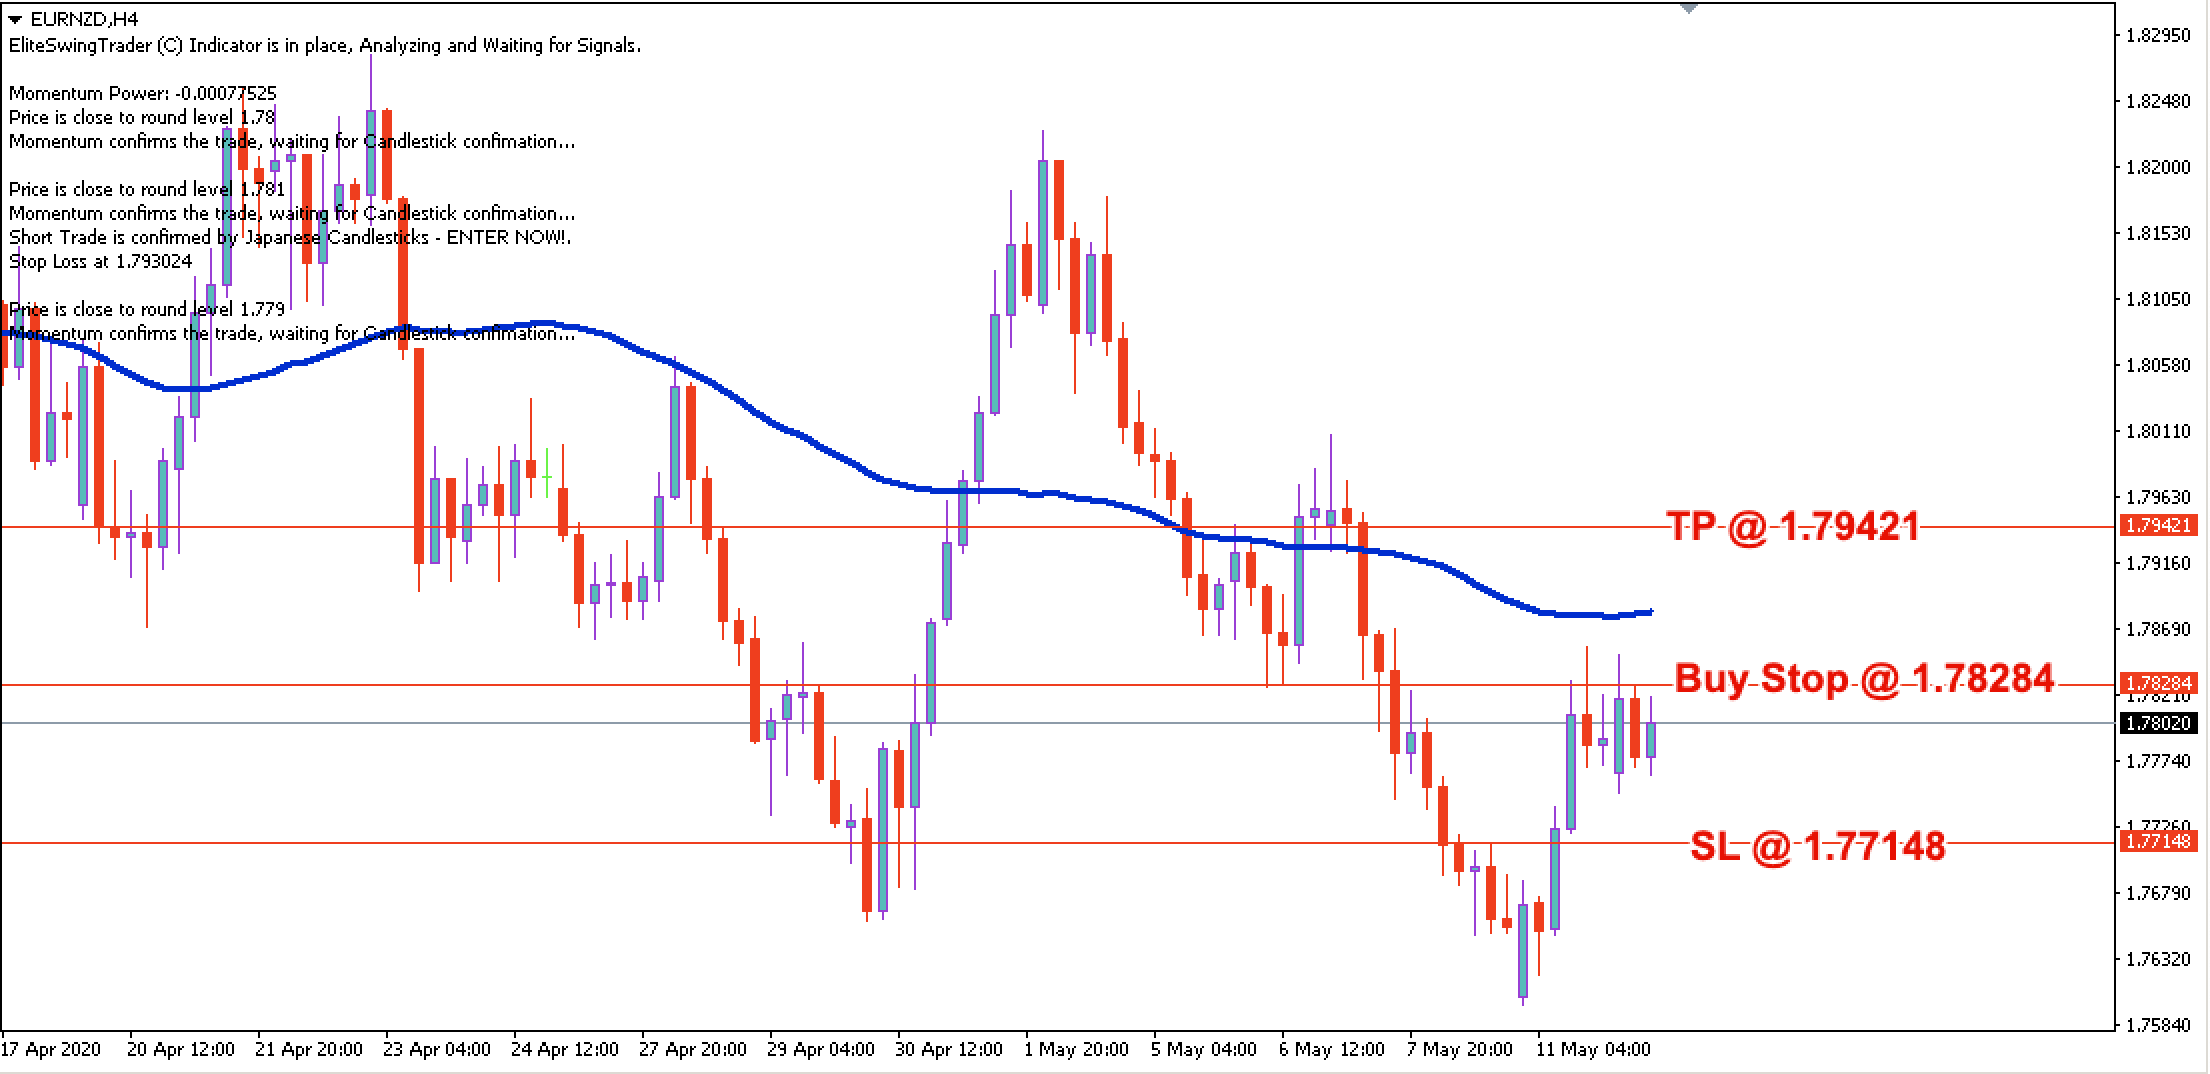 EUR/NZD Daily Price Forecast – 12th May 2020